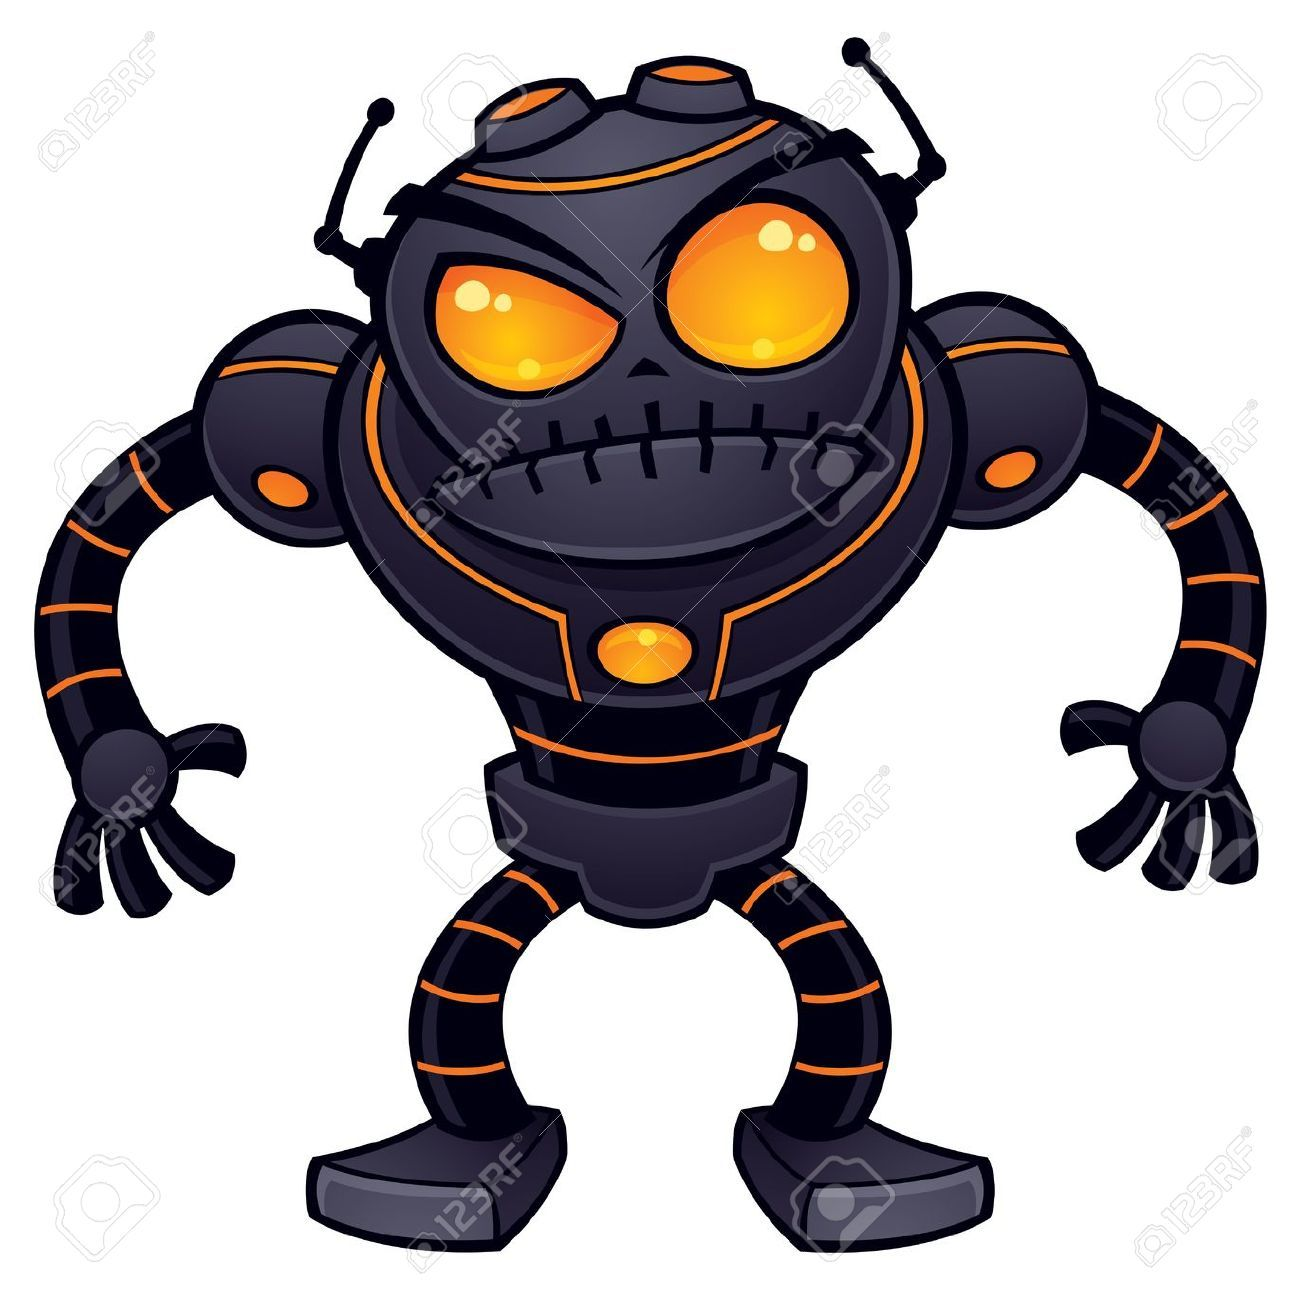 Cartoon Characters As Robots : Image result for robot eyes cartoon cartoons pinterest